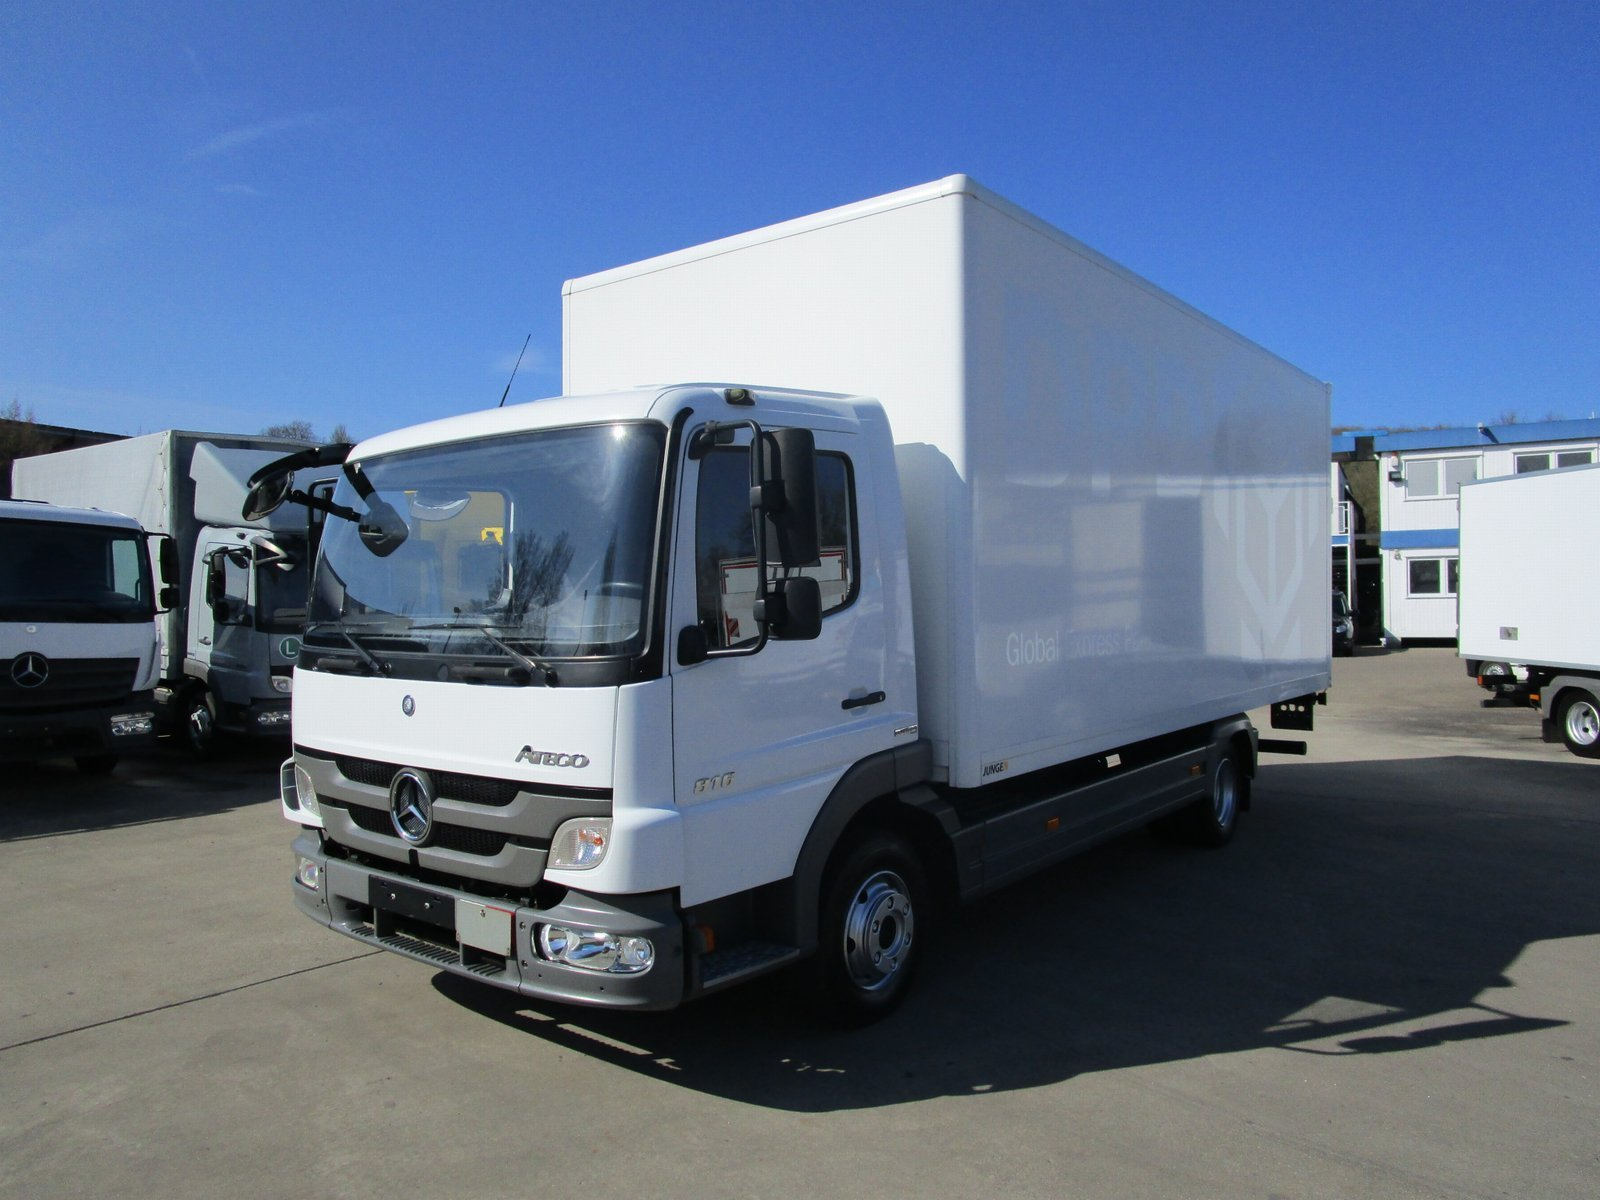 ATEGO III 816 Koffer 6,10 m LBW 1 to.